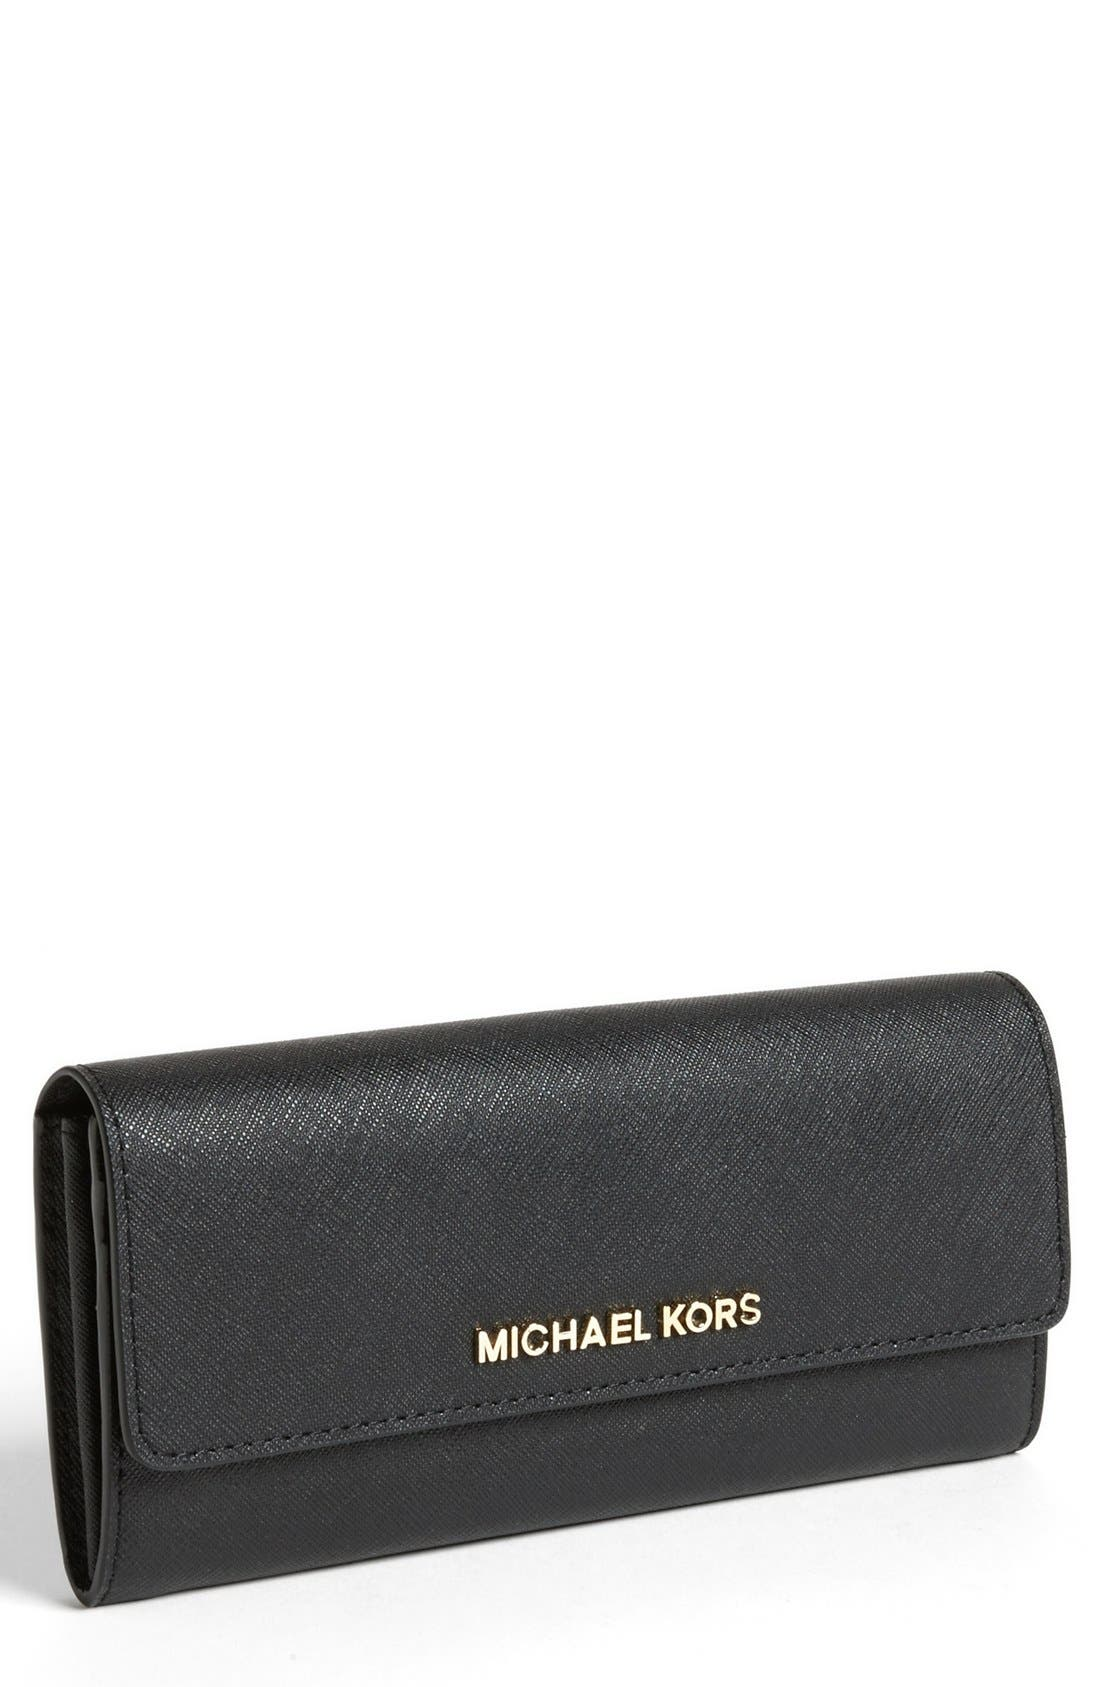 Main Image - MICHAEL Michael Kors Saffiano Leather Carryall Wallet